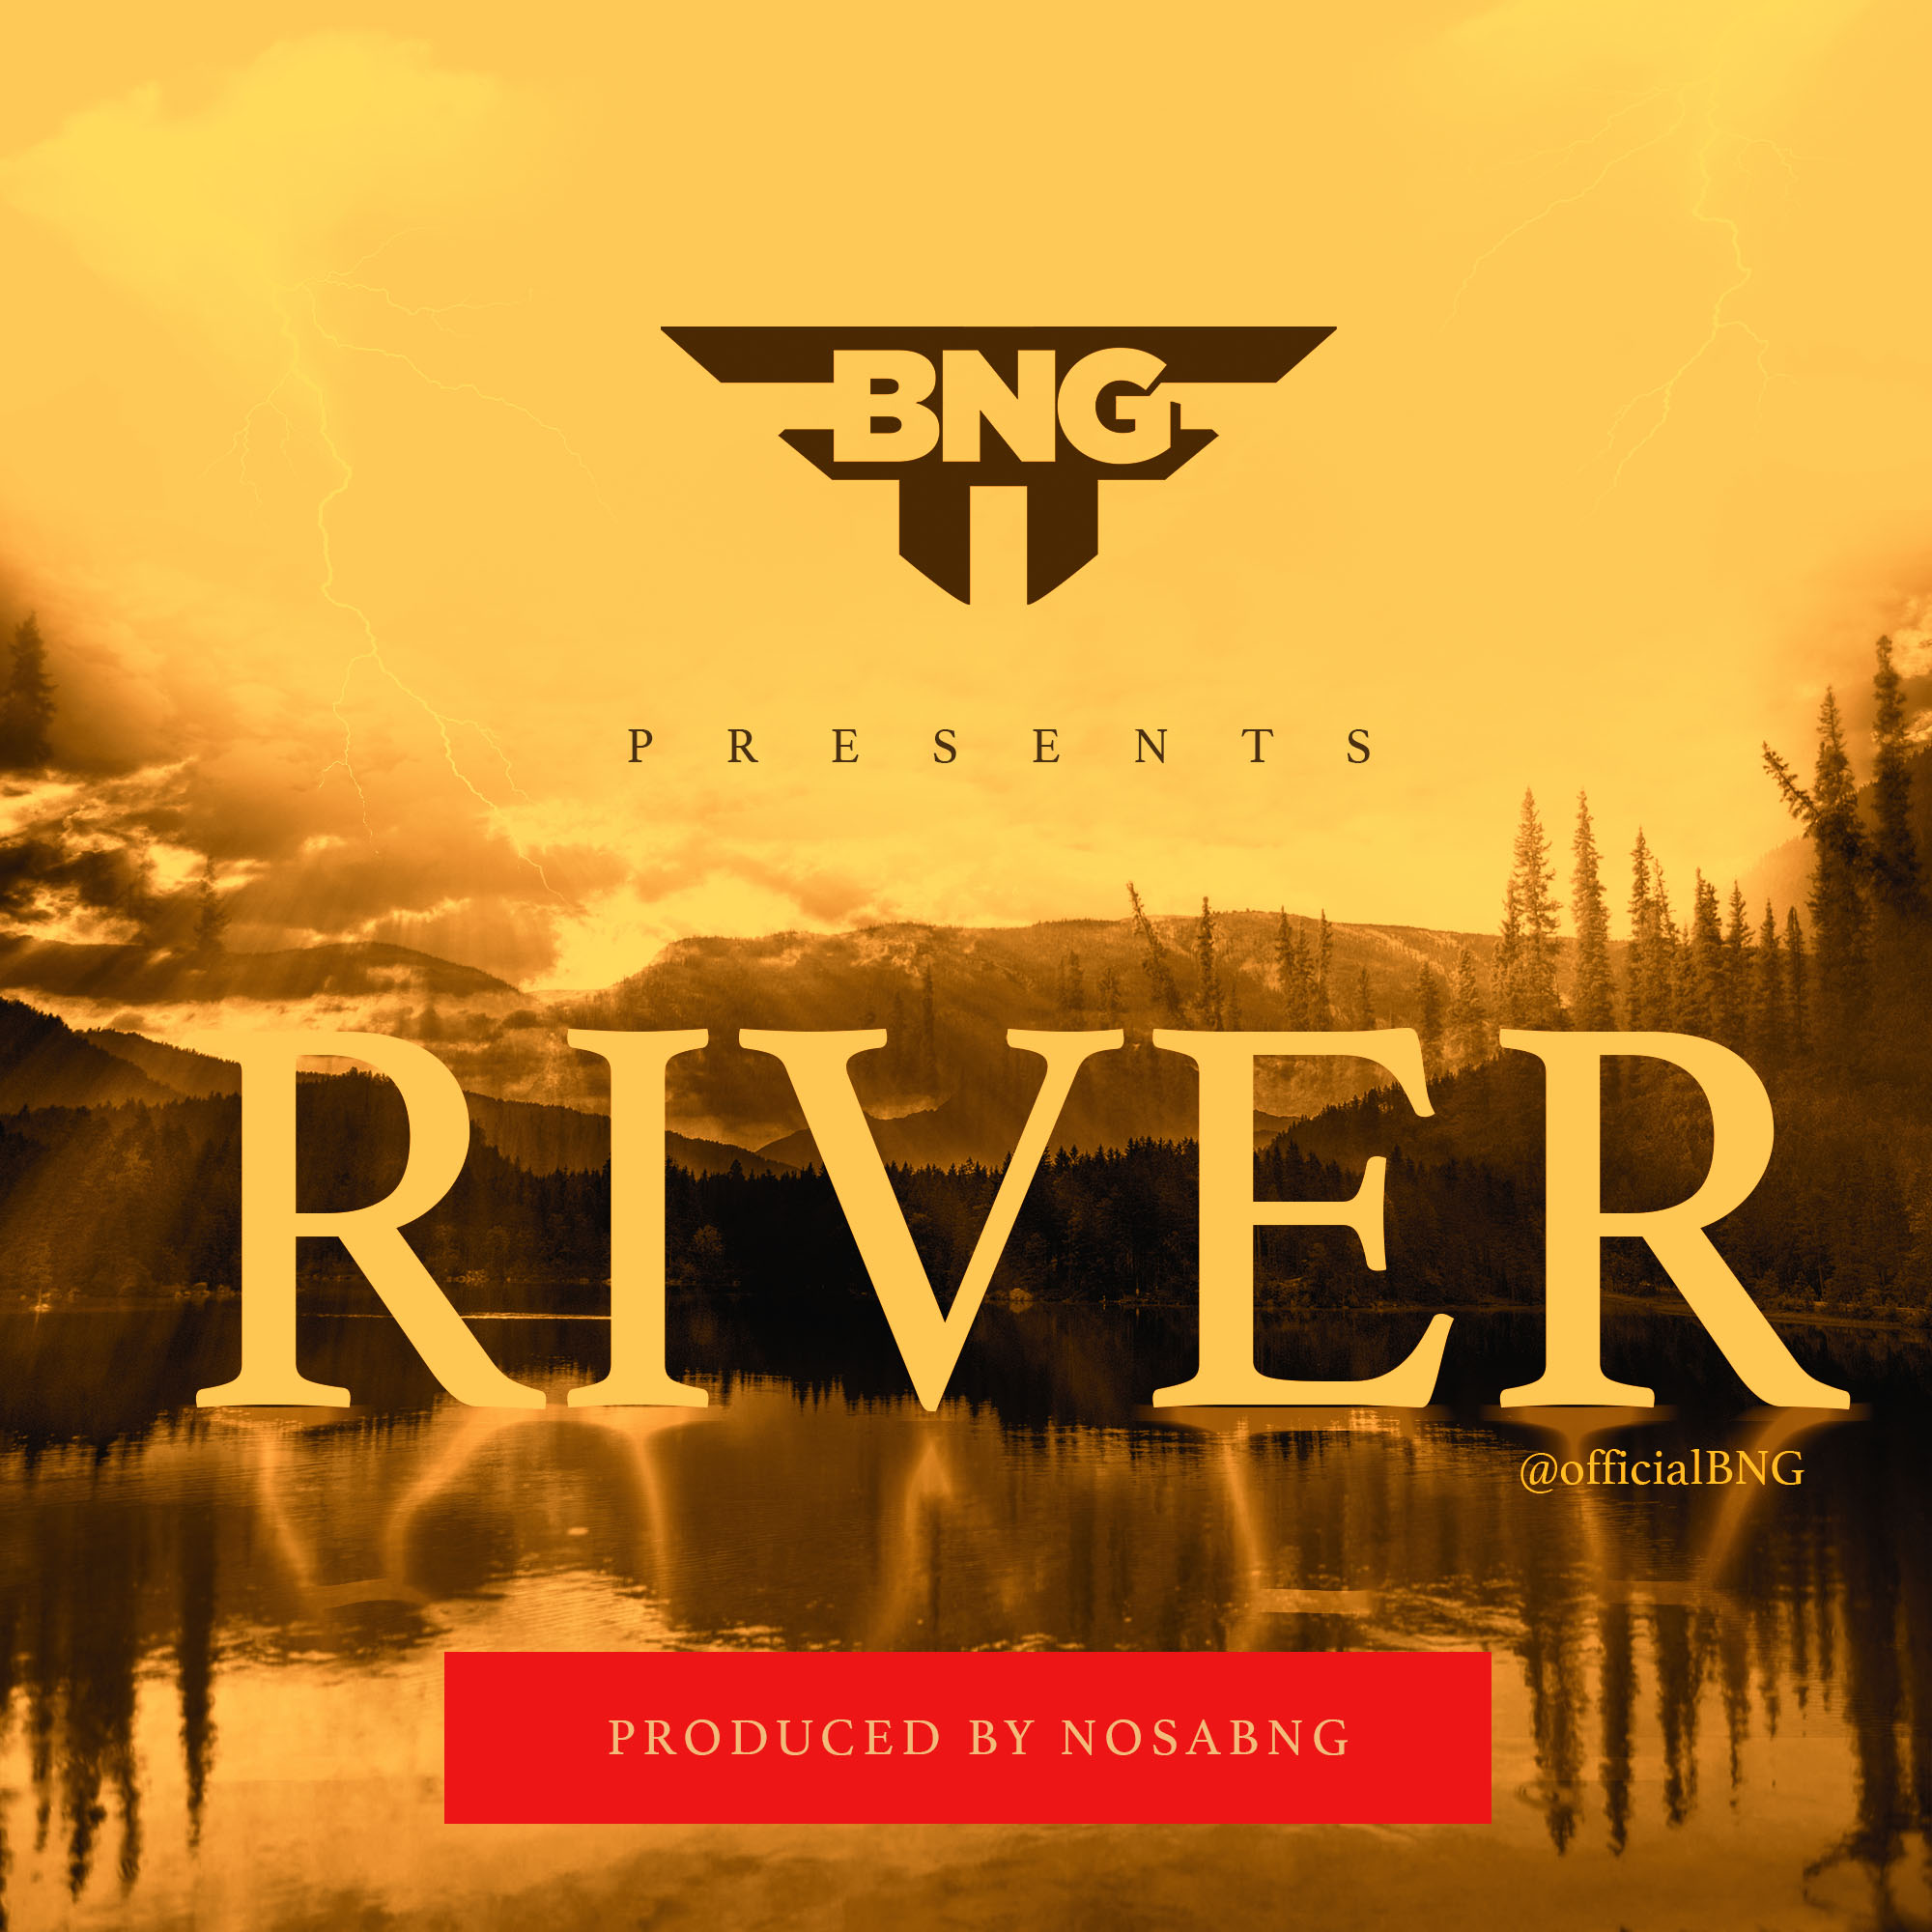 BNG - River